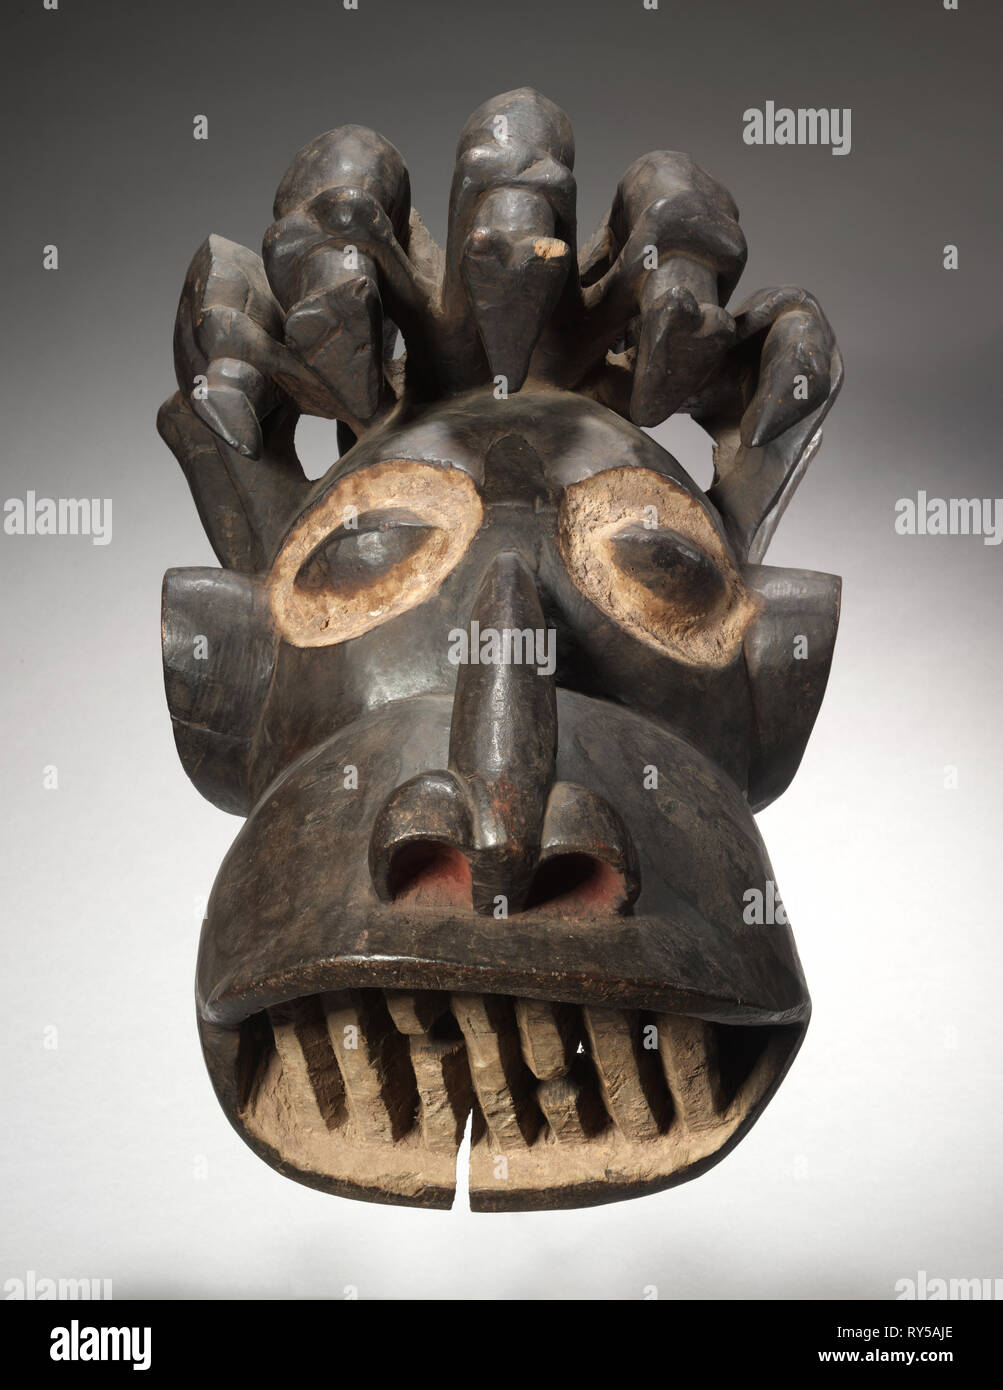 Helmet Mask, early 1900s. Equatorial Africa, Cameroon, possibly Kom, early 20th century. Wood, pigment; overall: 33 x 63.5 x 41.9 cm (13 x 25 x 16 1/2 in - Stock Image